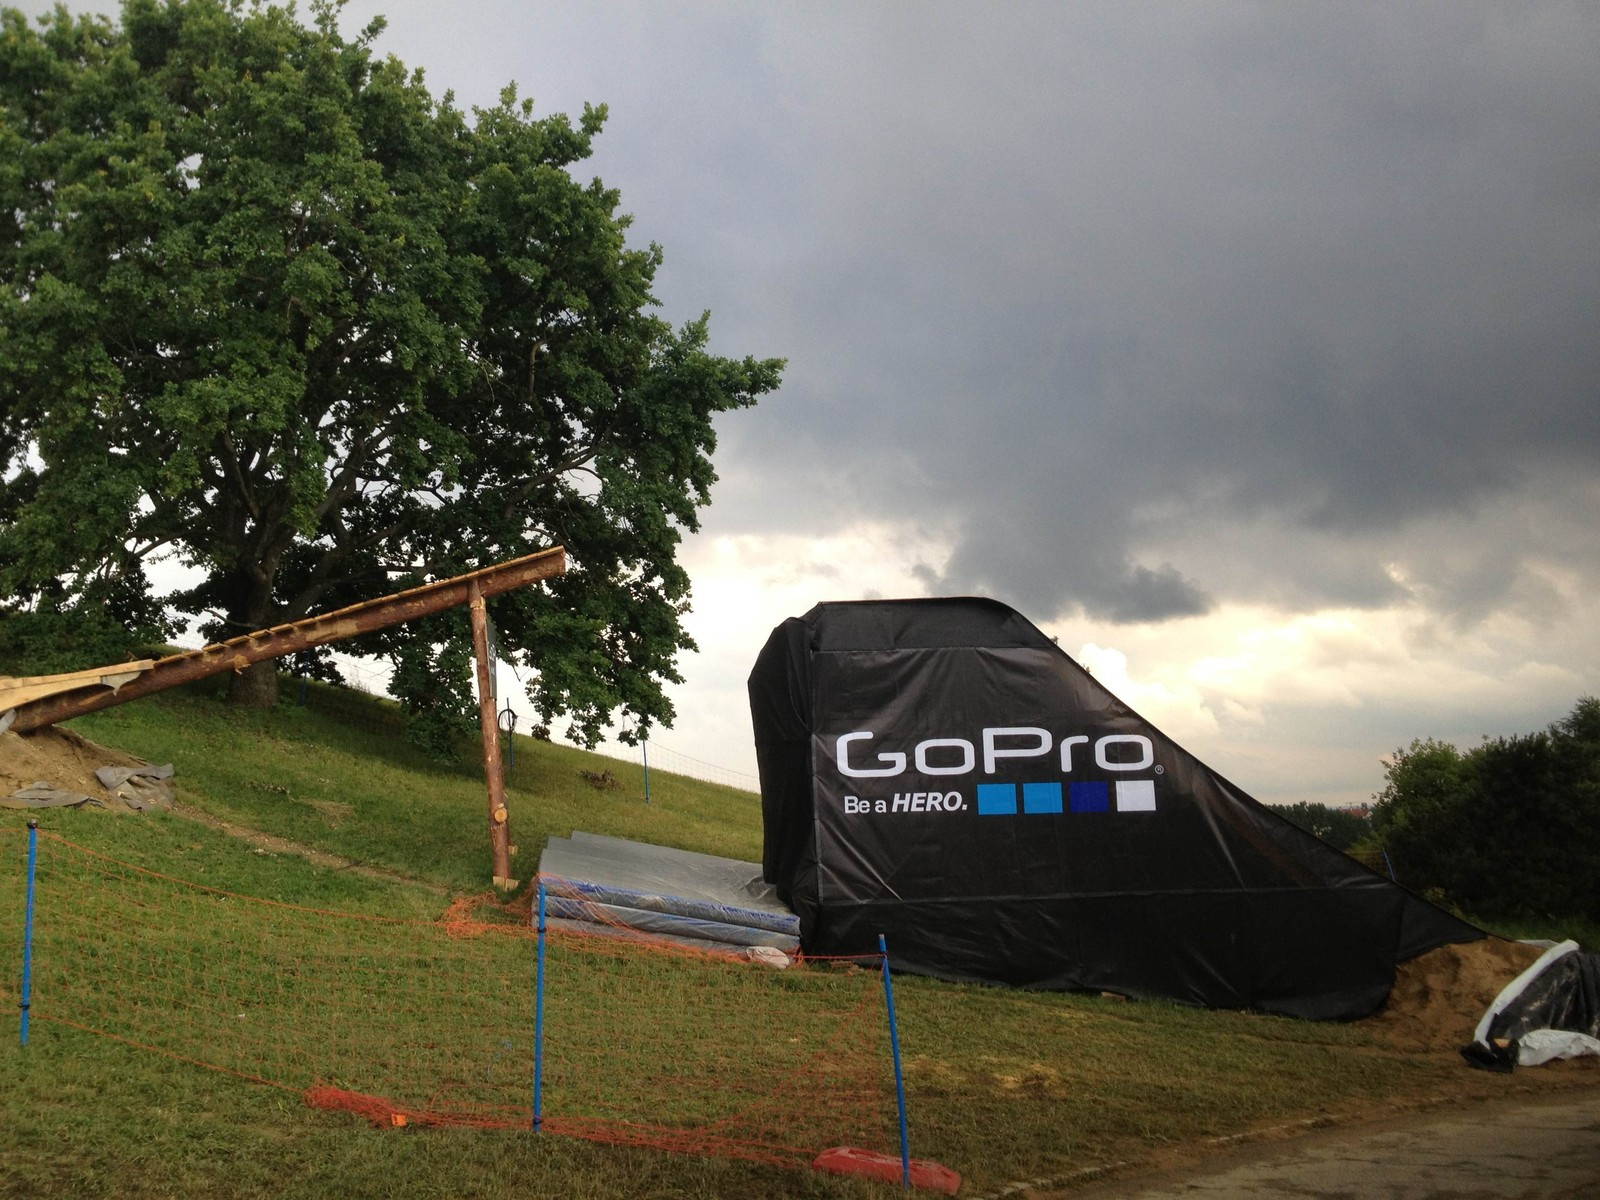 2013 X Games MTB Slopestyle Ladder Feature - All Things X-Games Munich Slopestyle - Mountain Biking Pictures - Vital MTB